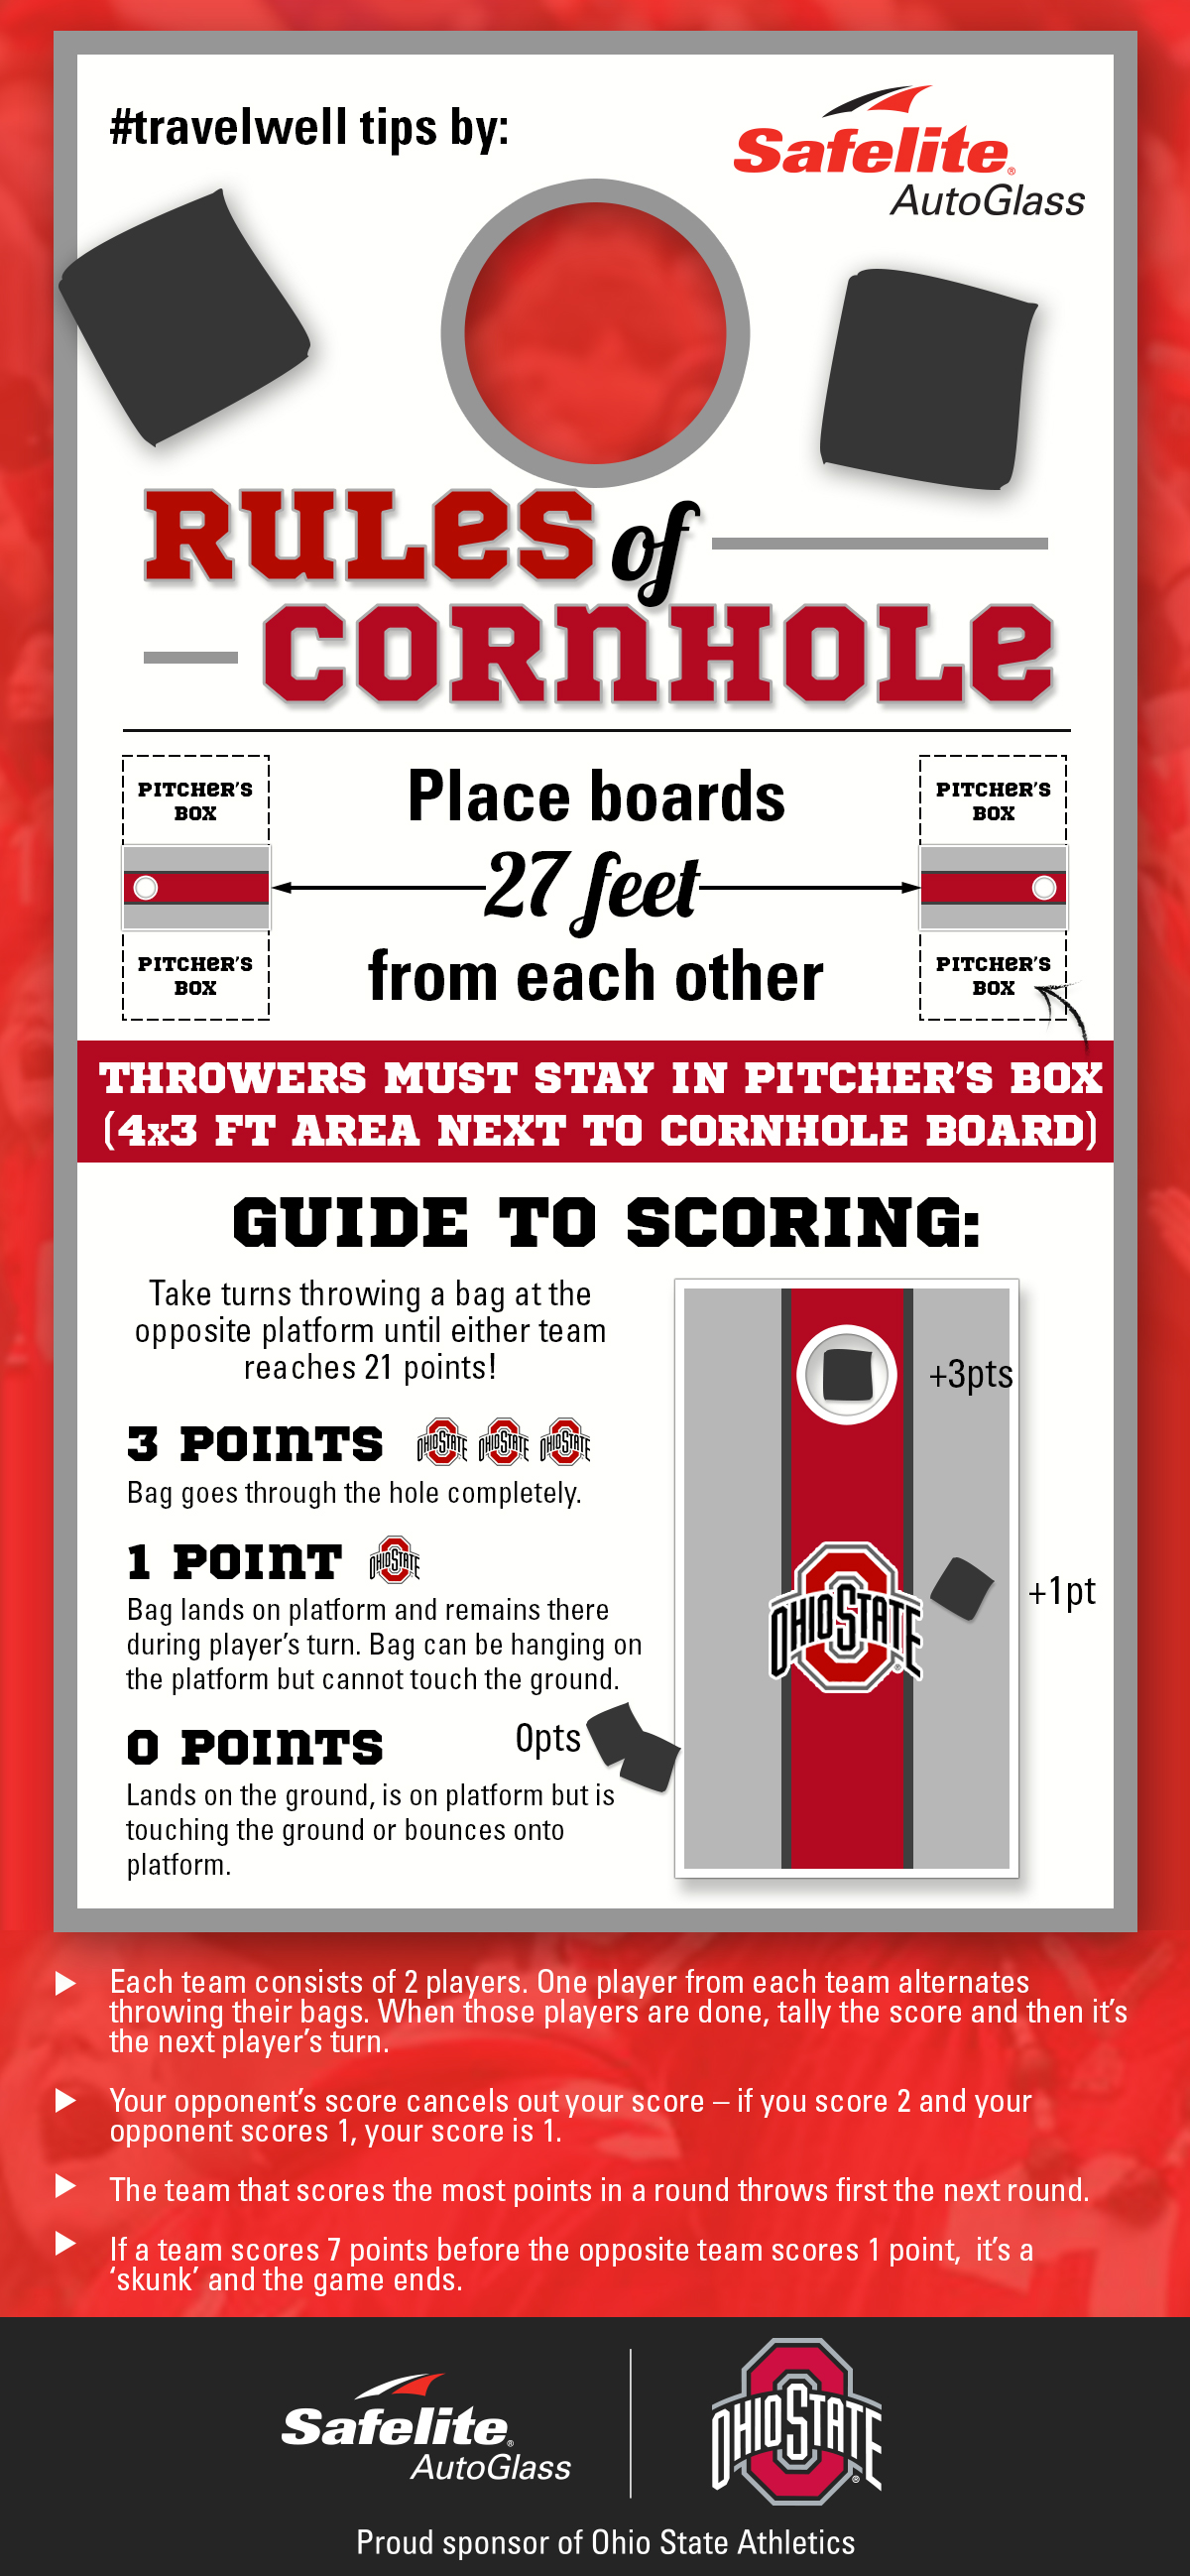 Safelite shares all the rules of cornhole so you're set for your next tailgate!